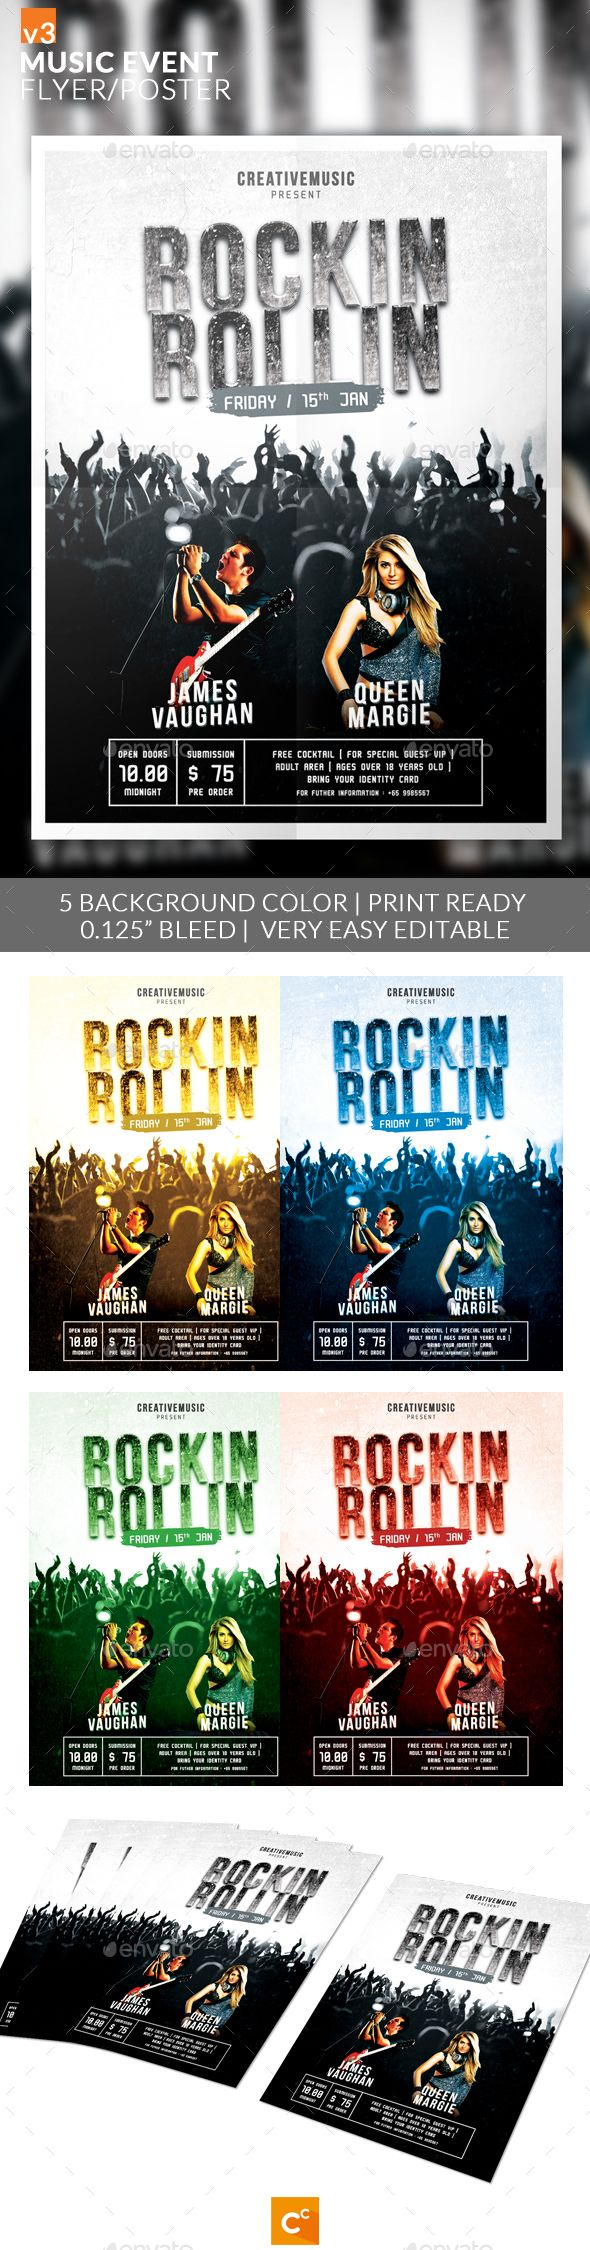 Music Event Flyer/Poster v3 by CreativeComplex Music Event Flyer/Poster v3 Flyer design template made on event or music concert theme with simple contents. Features5 Background